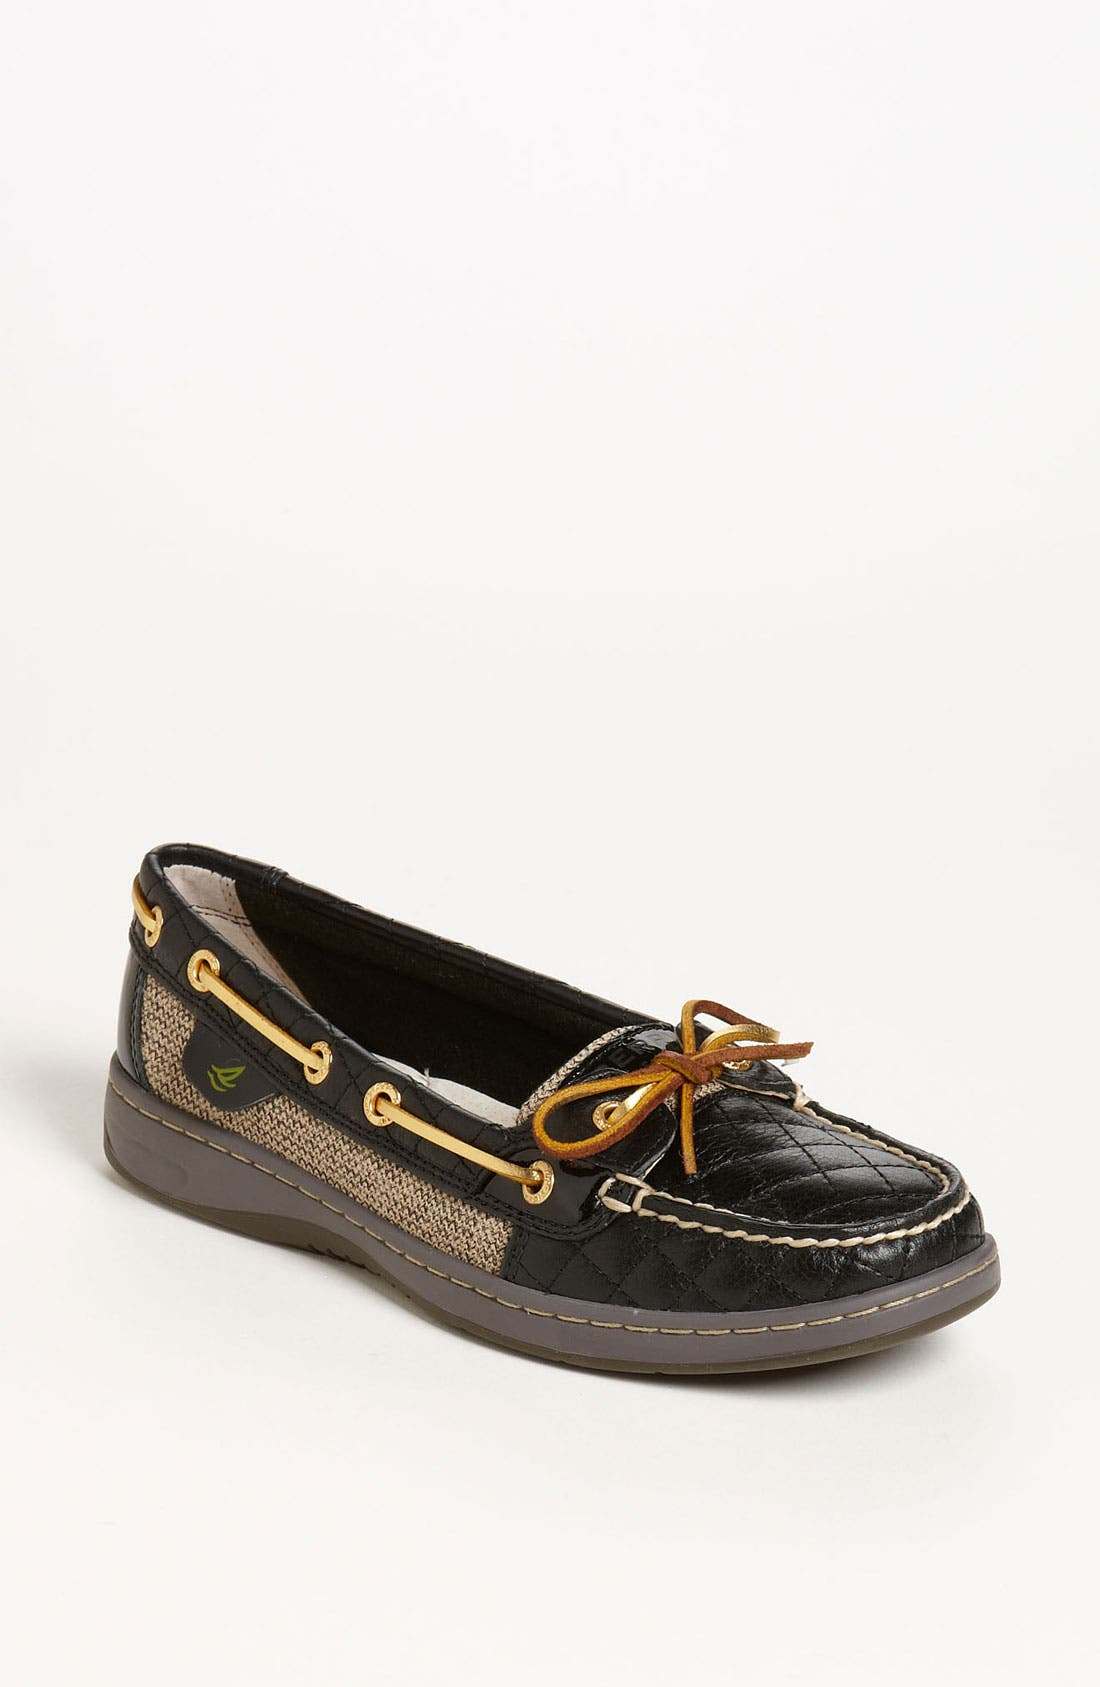 Top-Sider<sup>®</sup> 'Angelfish - Quilted' Boat Shoe,                             Main thumbnail 1, color,